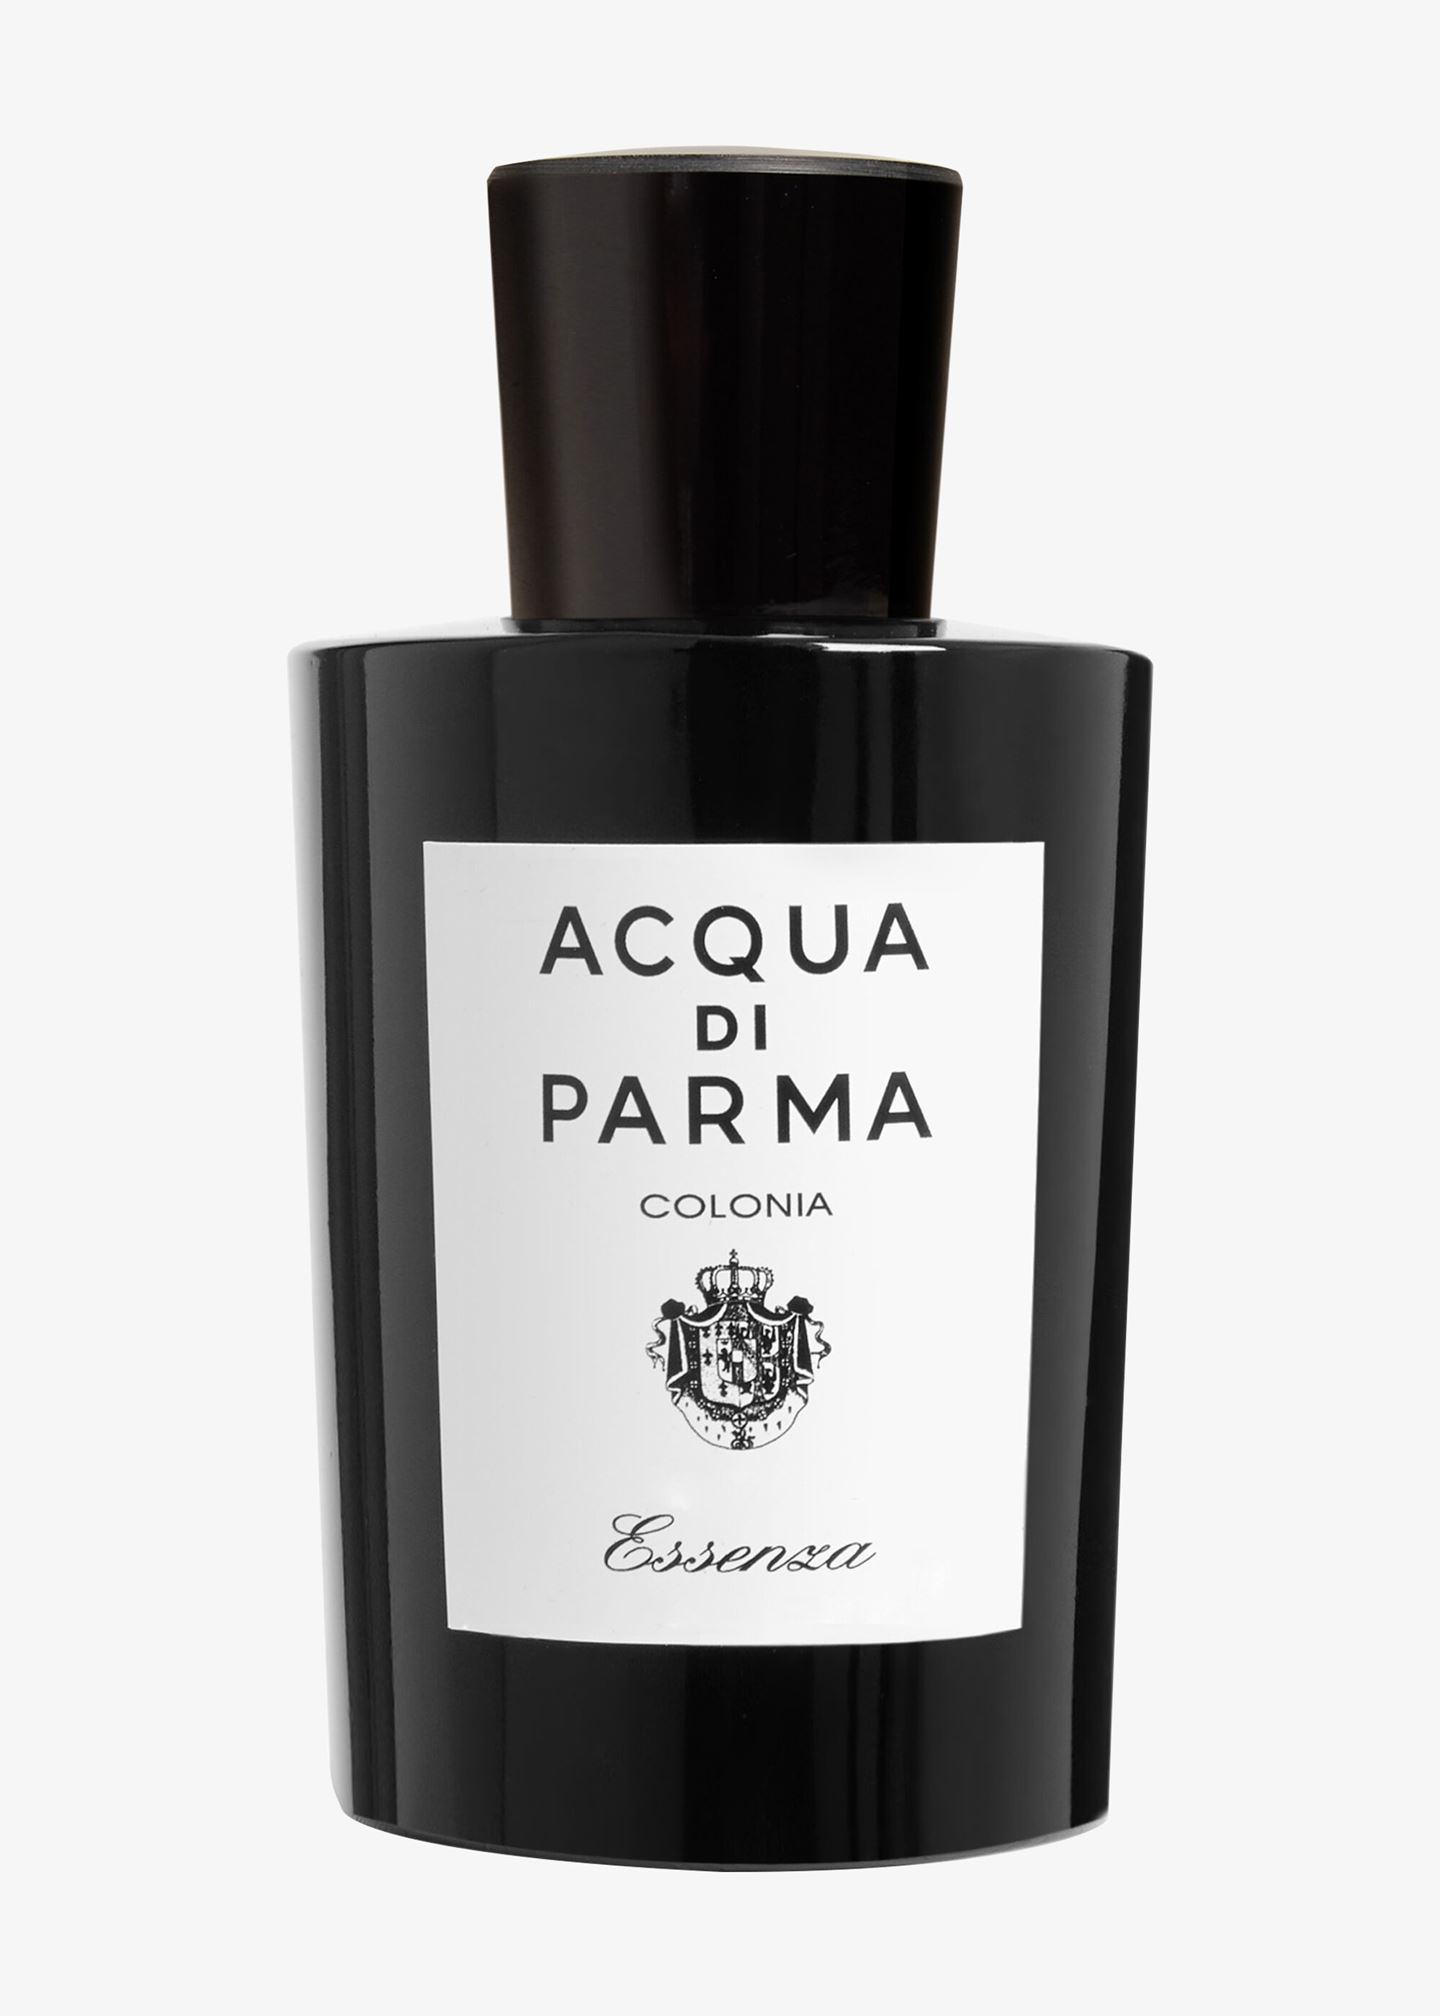 Parfüm Acqua di Parma Colonia Essenza EdC 500ml